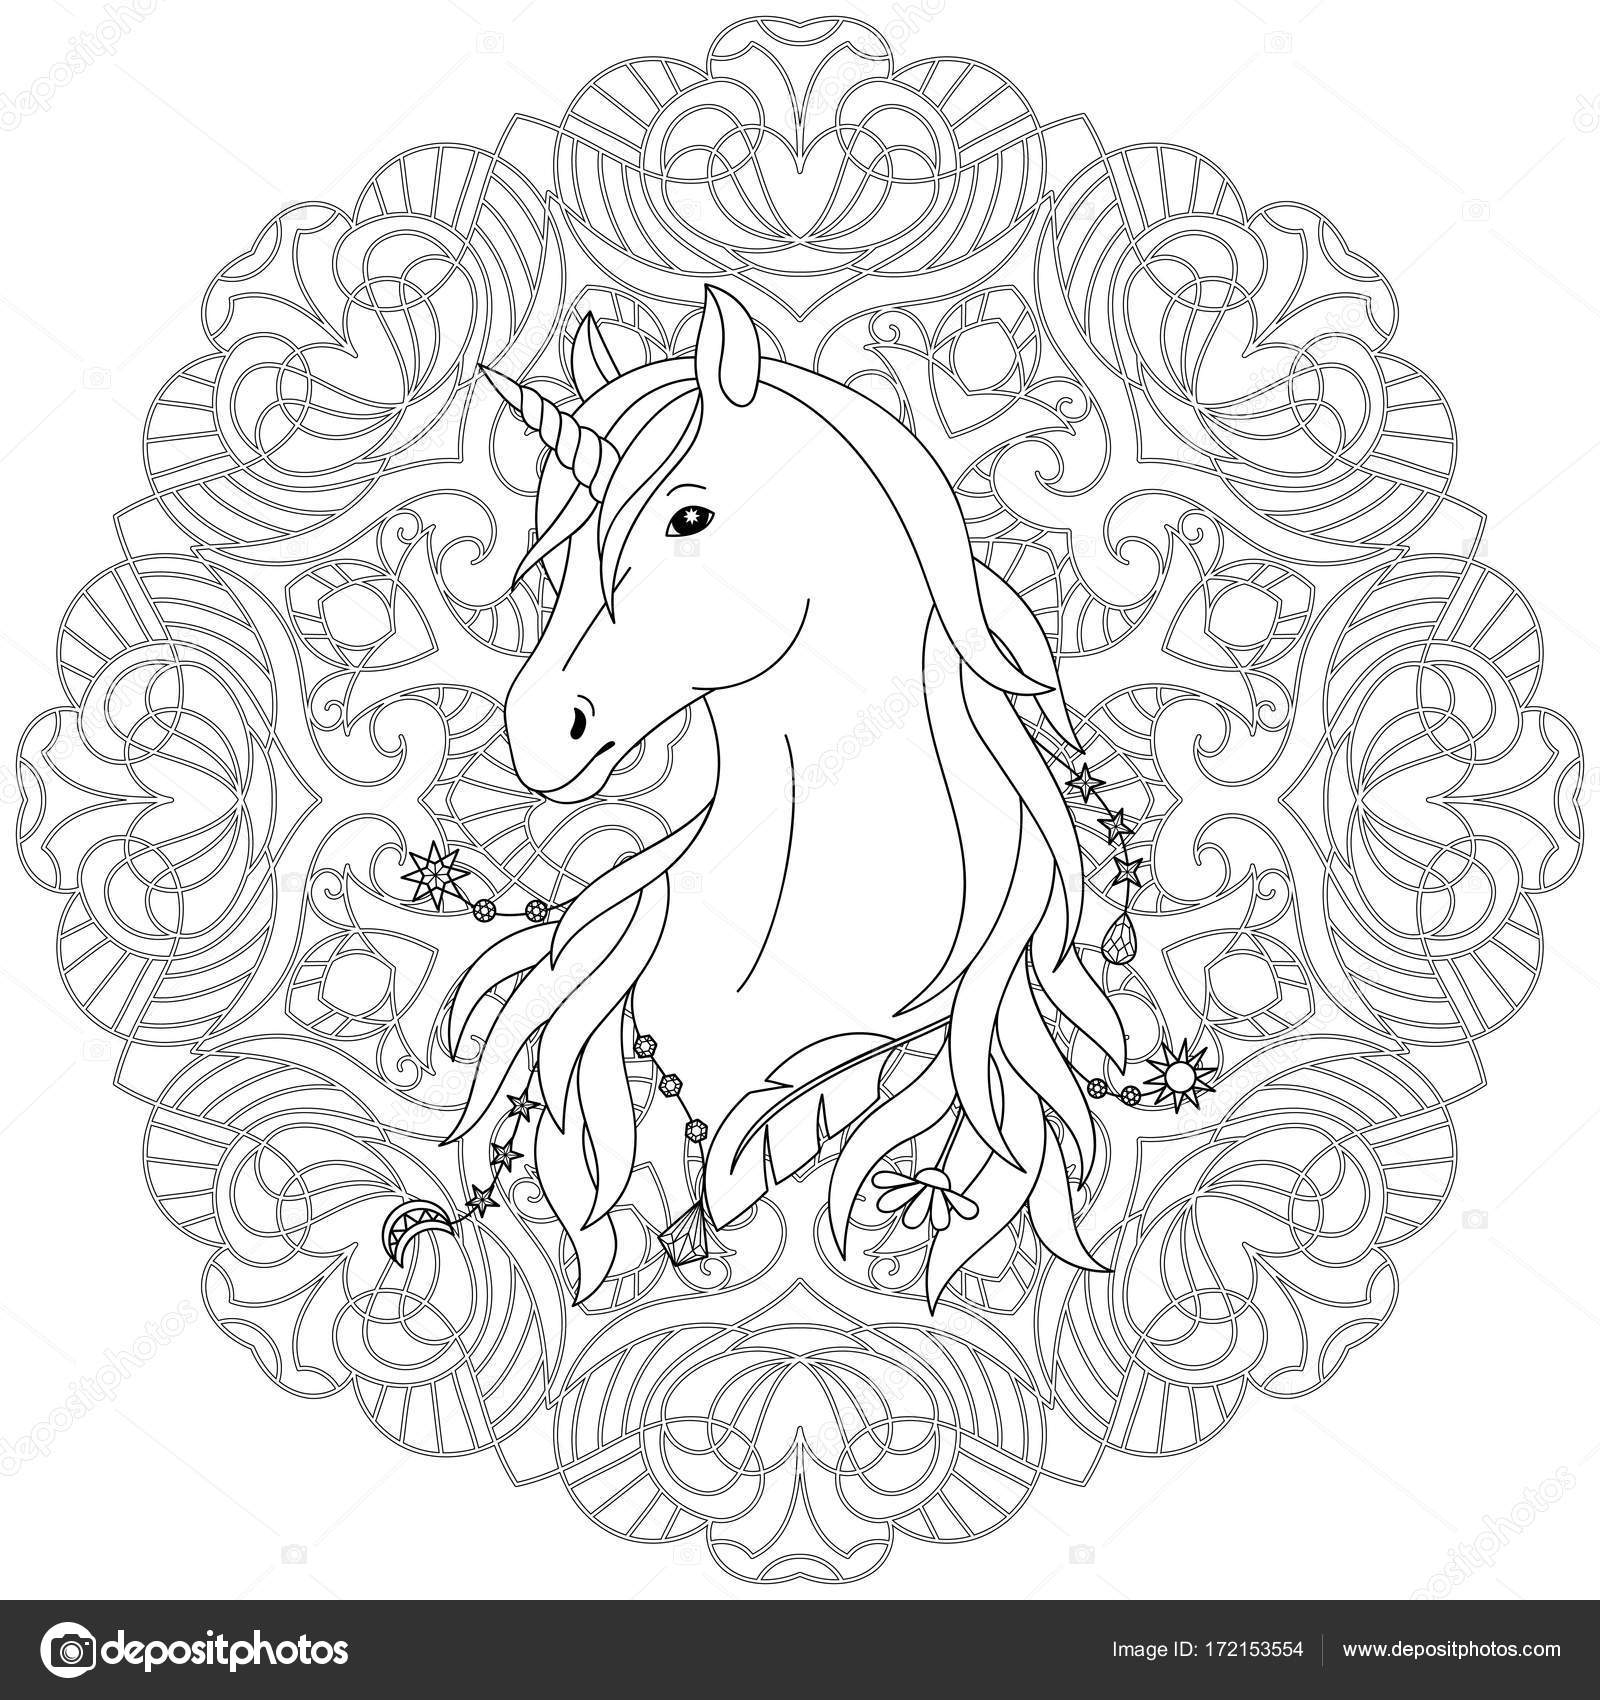 Unicorn Tattoo Kleurplaat Stockvector Kronalux 172153554